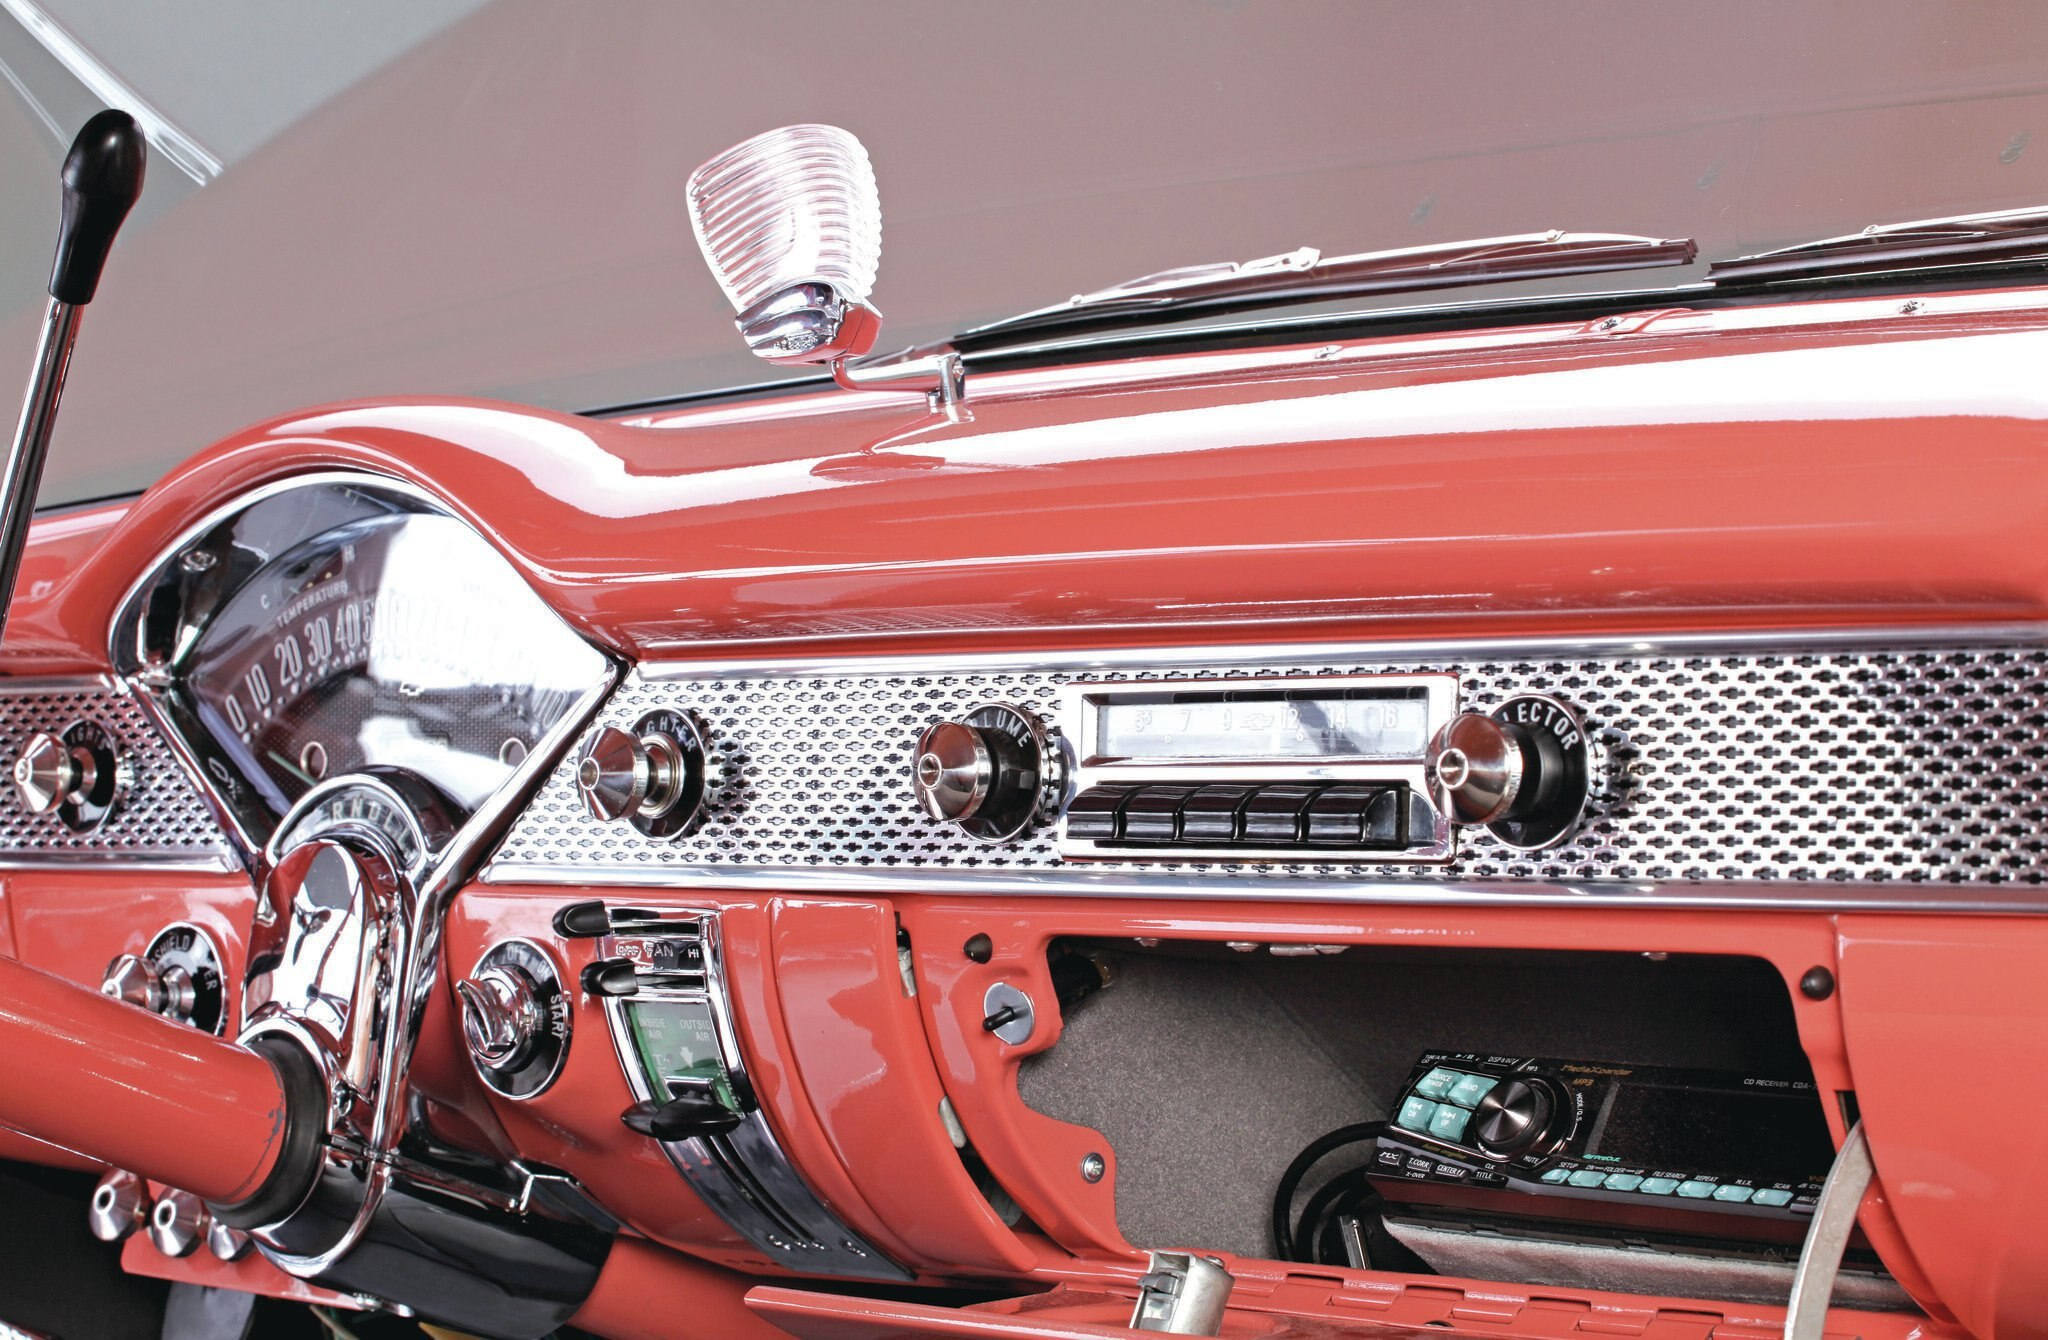 55 Chevy Bel Air Interior Pictures Upcomingcarshq Com